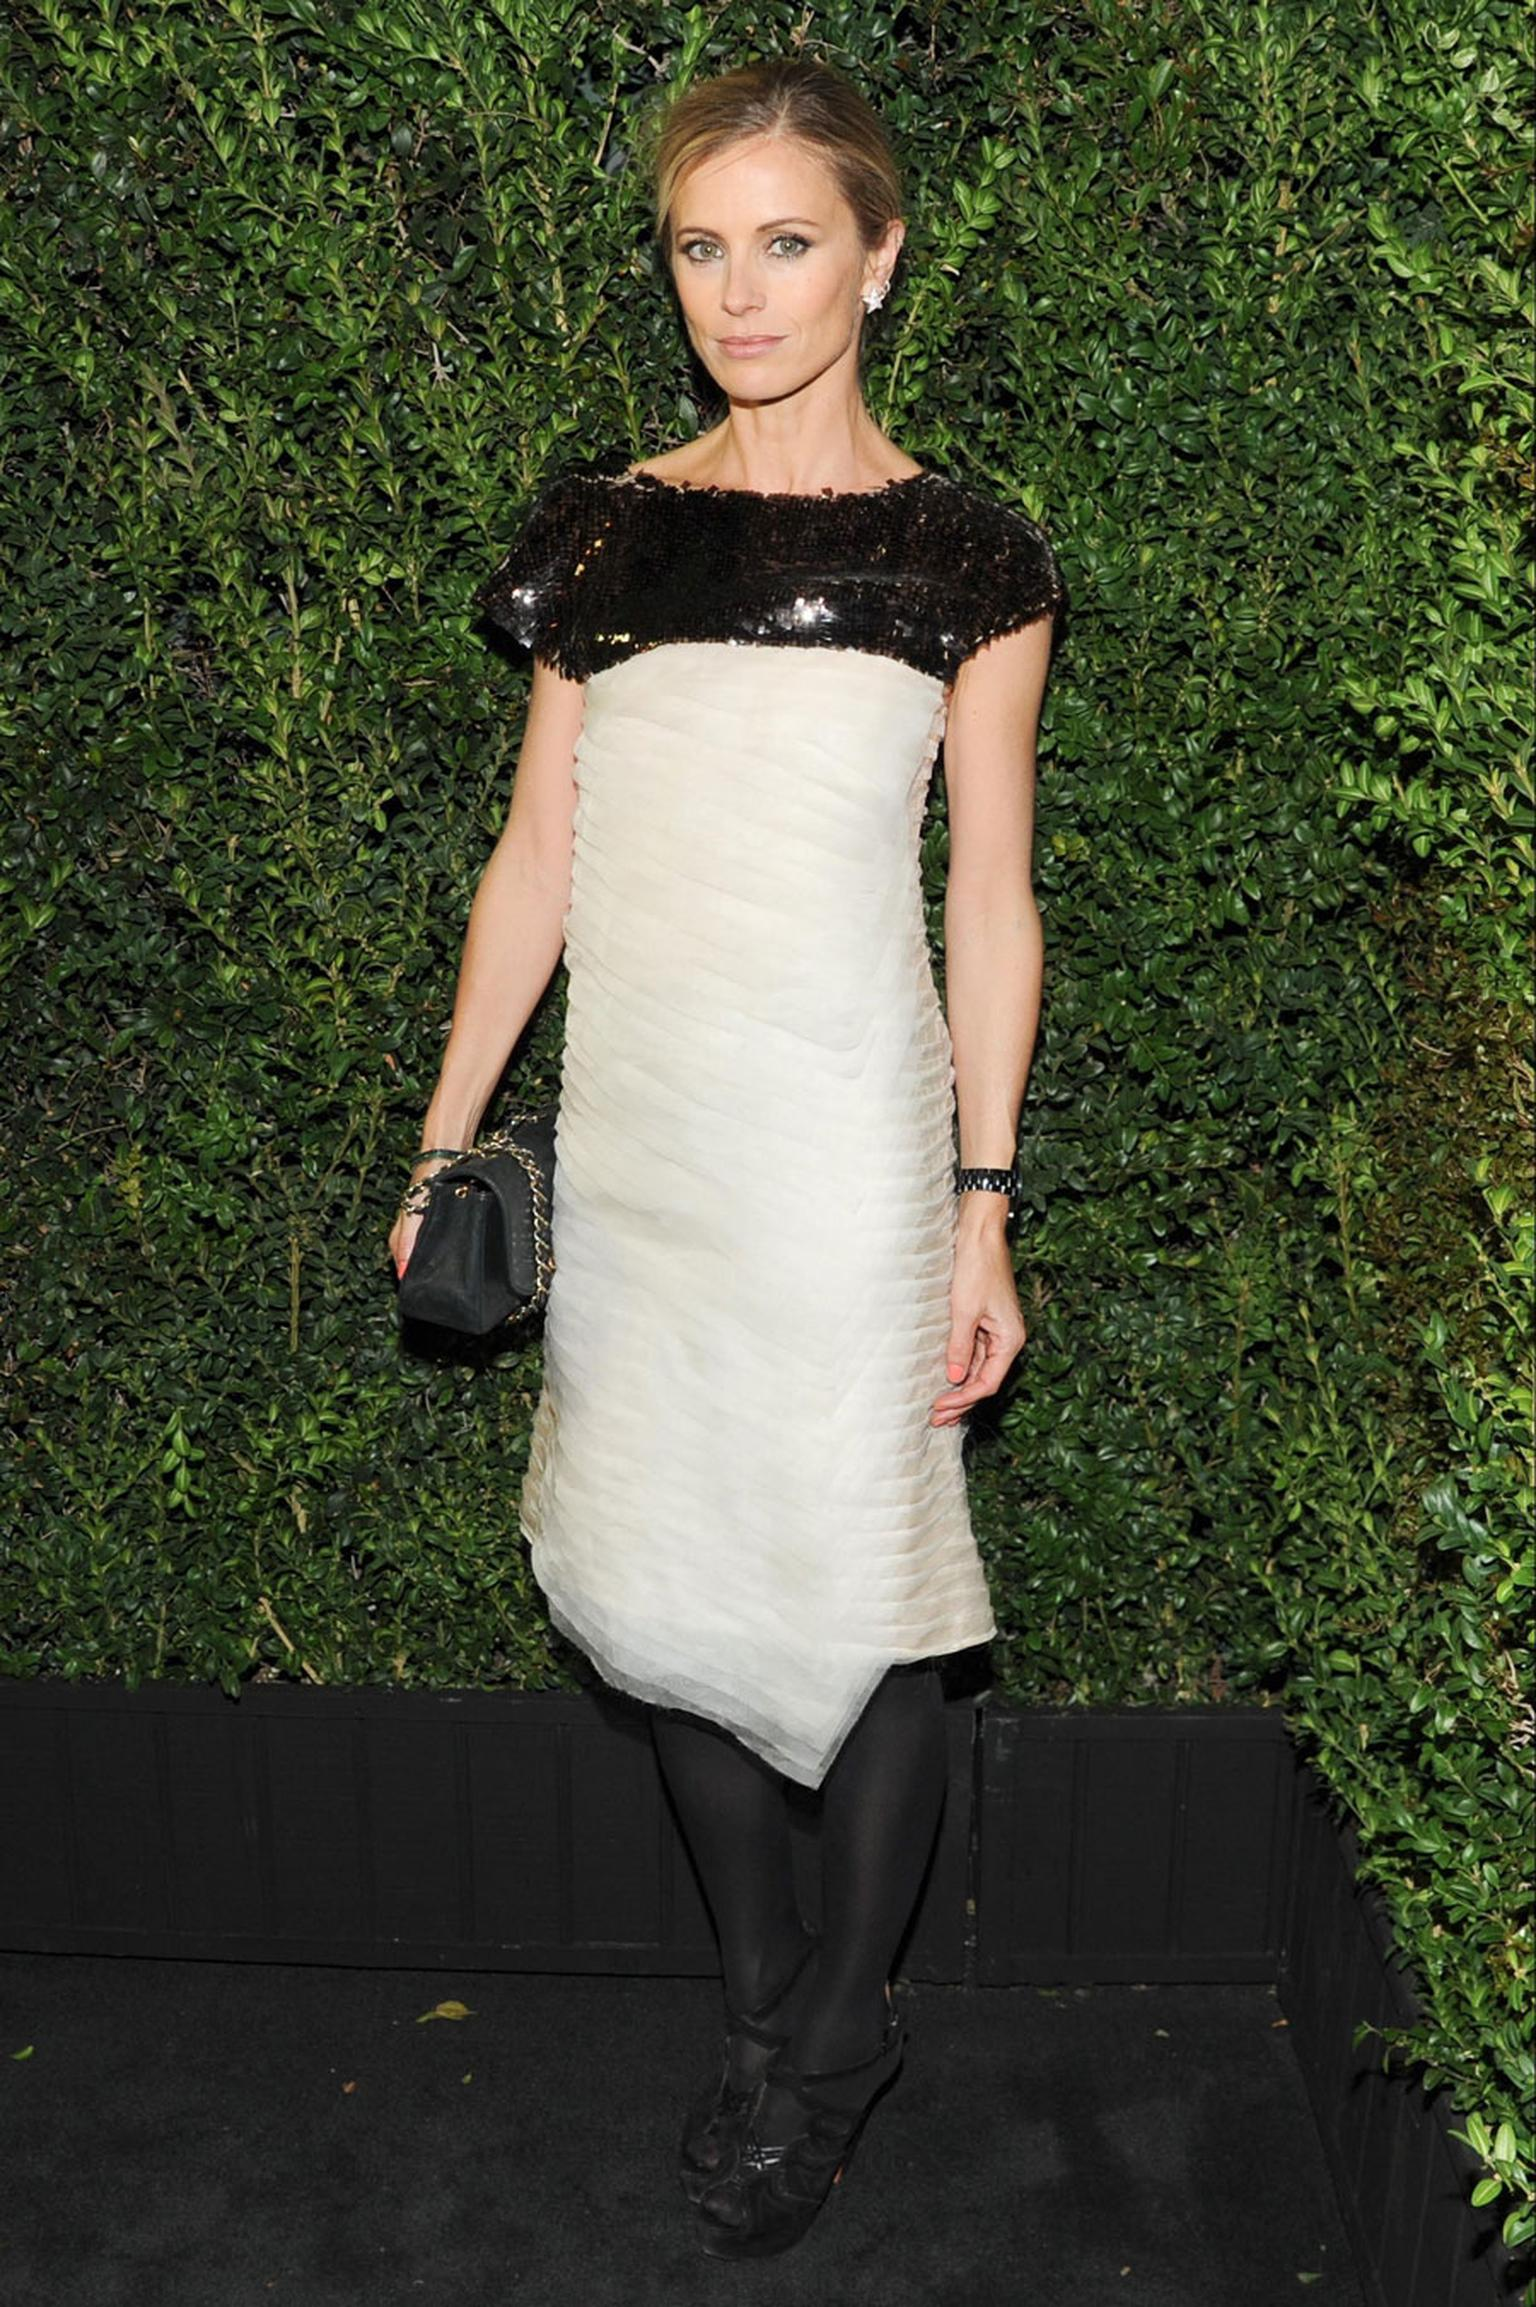 Laura-Bailey-Chanel-and-Charles-Finch-Oscars-Dinner-23-fevrier-2013